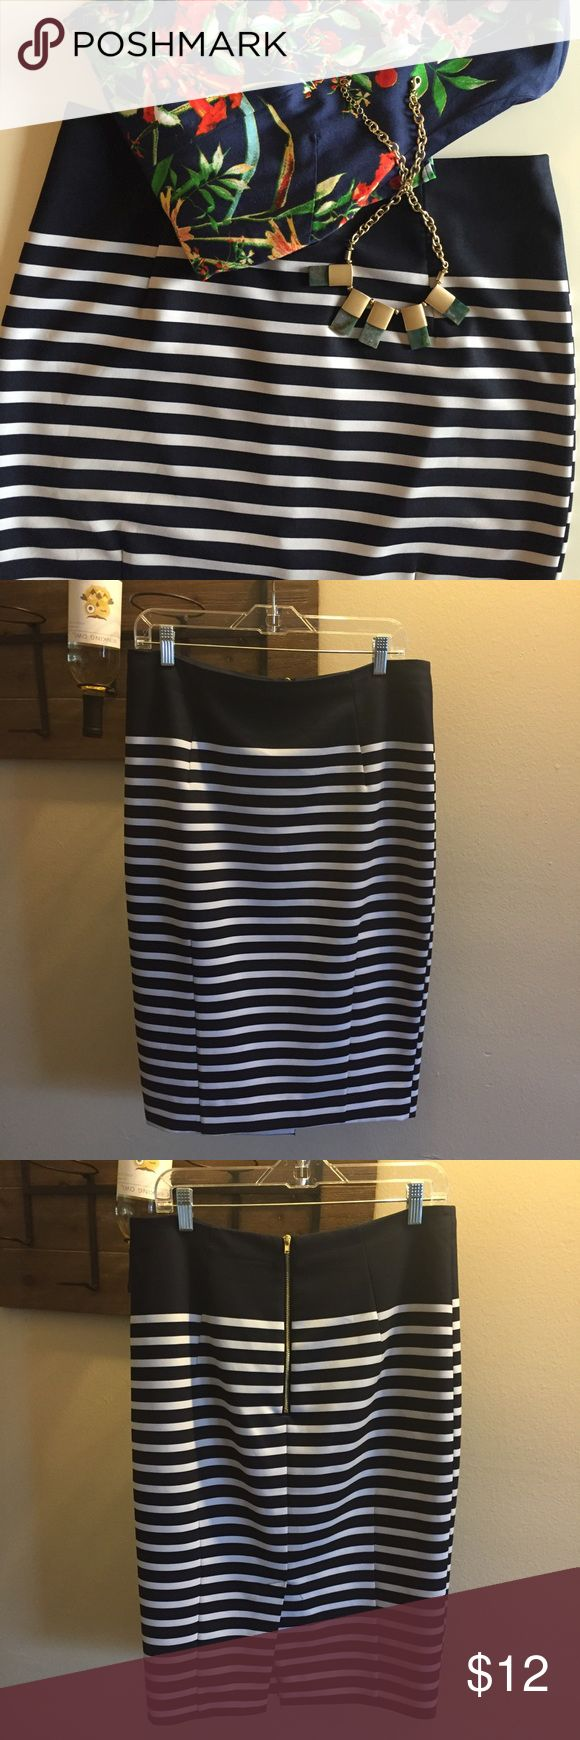 Navy & white striped pencil skirt One of my favorite skirts that no longer fits! Has a flattering, scuba style to it that makes a statement! Has exposed zipper and a back split. Measurements pictured. H&M Skirts Pencil